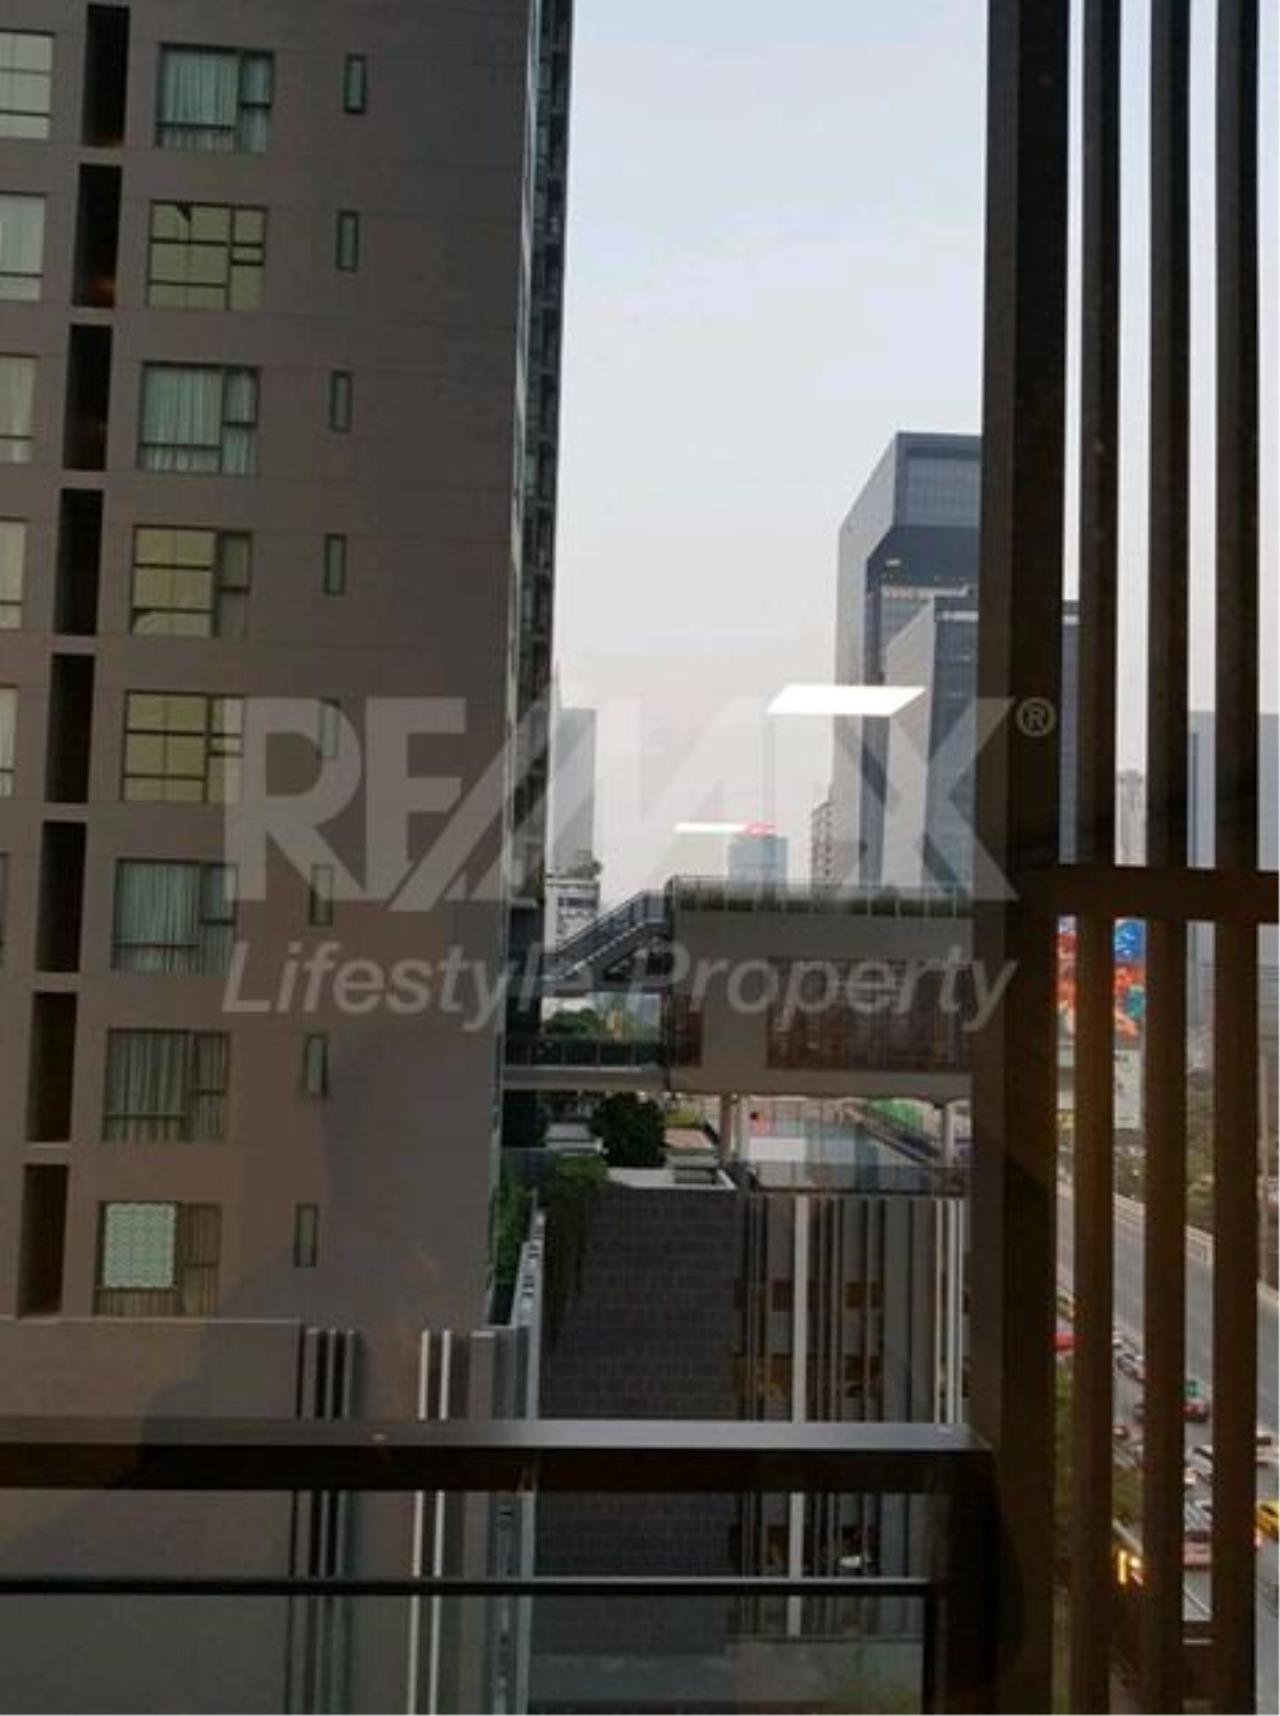 RE/MAX LifeStyle Property Agency's Chewathai Residence Asoke 7